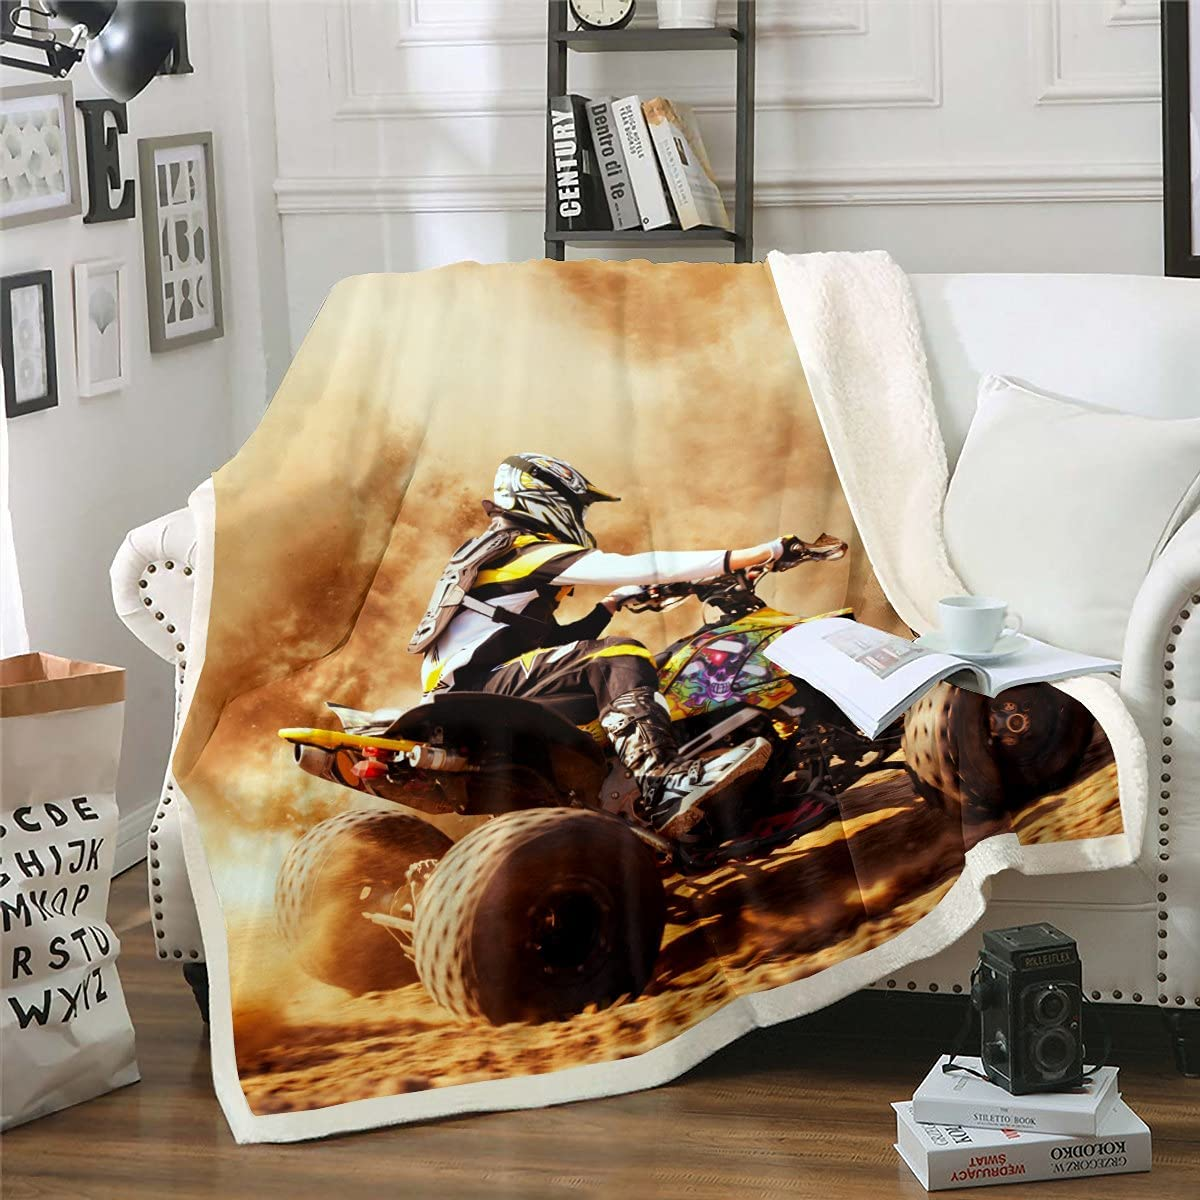 Mountain Bike Sherpa Blanket Motocross Sport Beauty products Racer High quality Theme Extreme